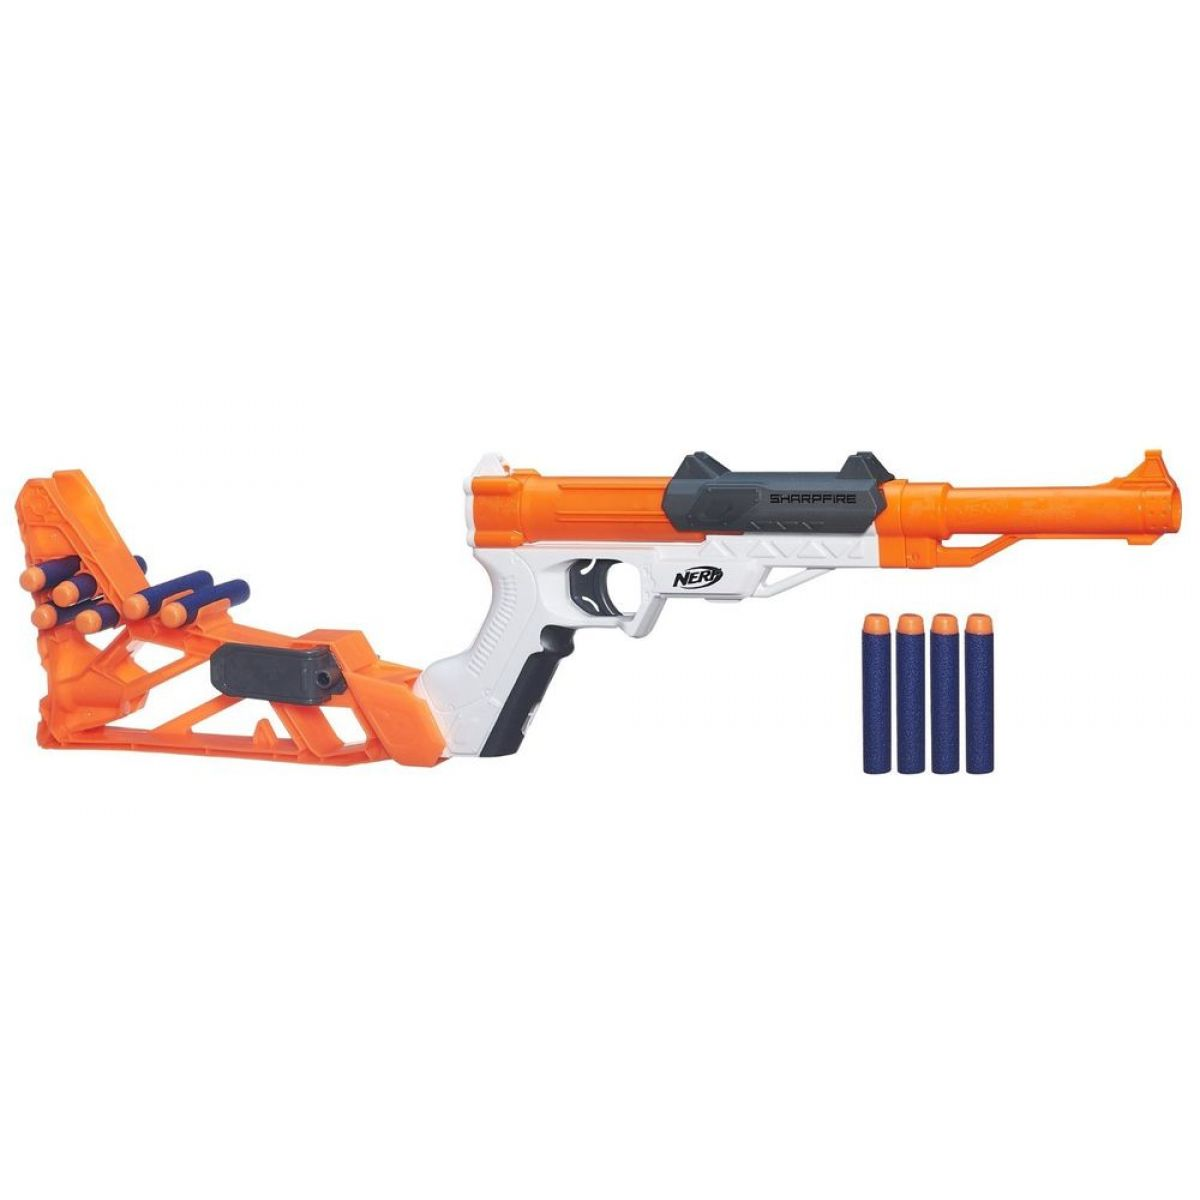 Nerf N-Strike Elite Sharpfire 6v1